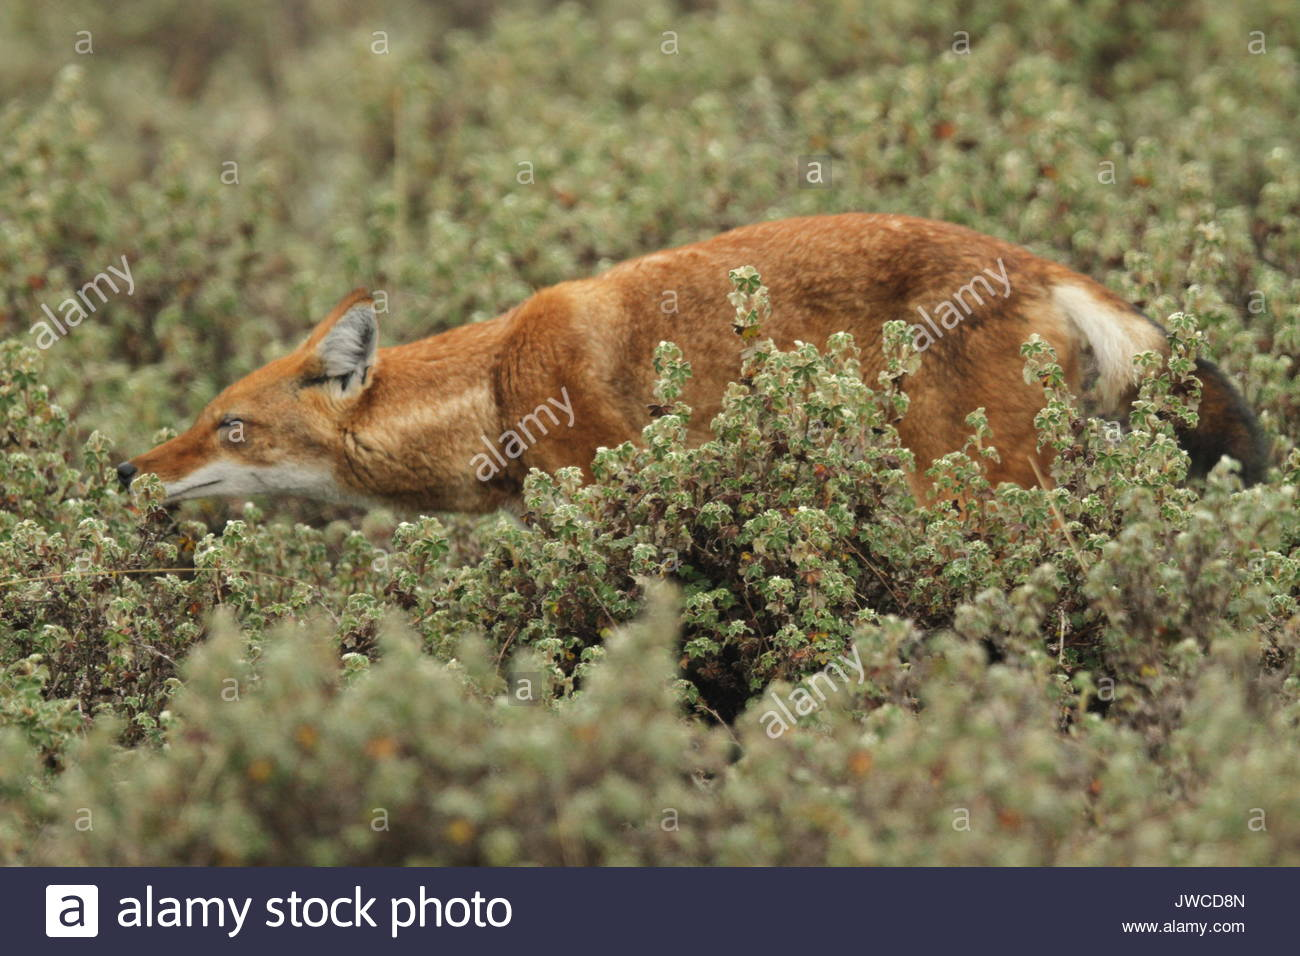 An Ethiopian wolf,Canis simensis,walks through vegetation in Bale Mountains National Park. - Stock Image